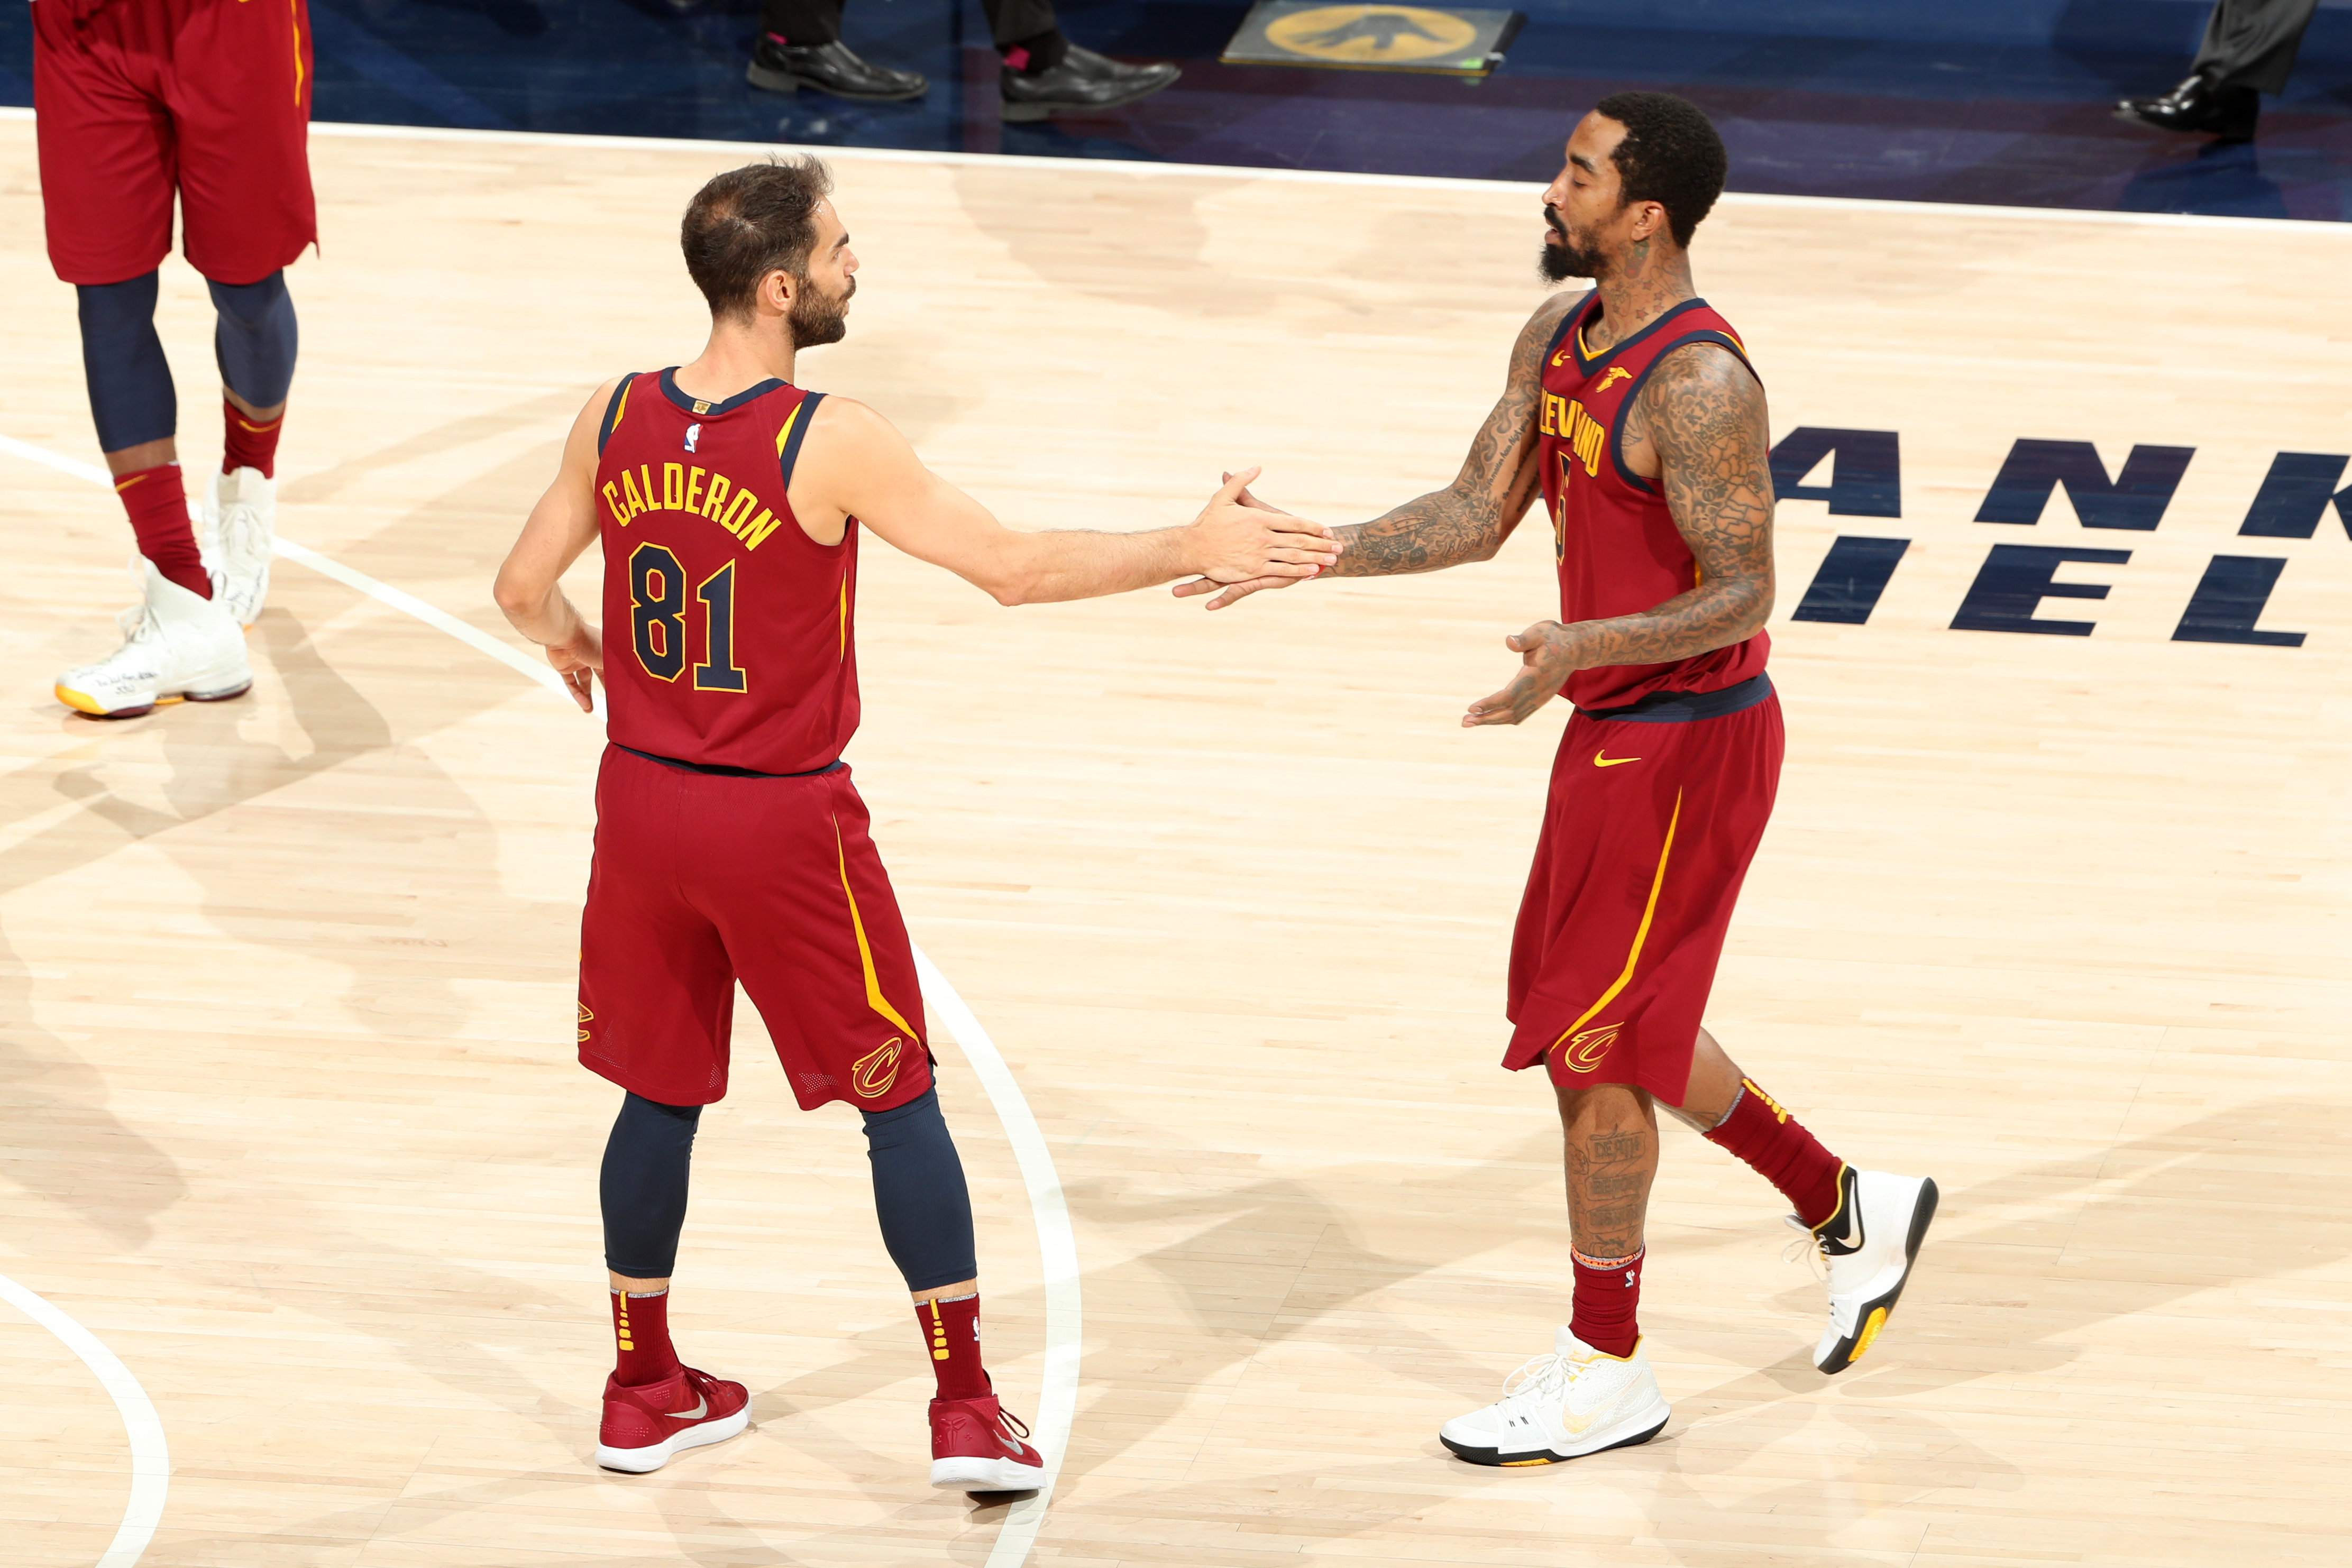 GAME 4 RECAP: Cavs 104, Pacers 100